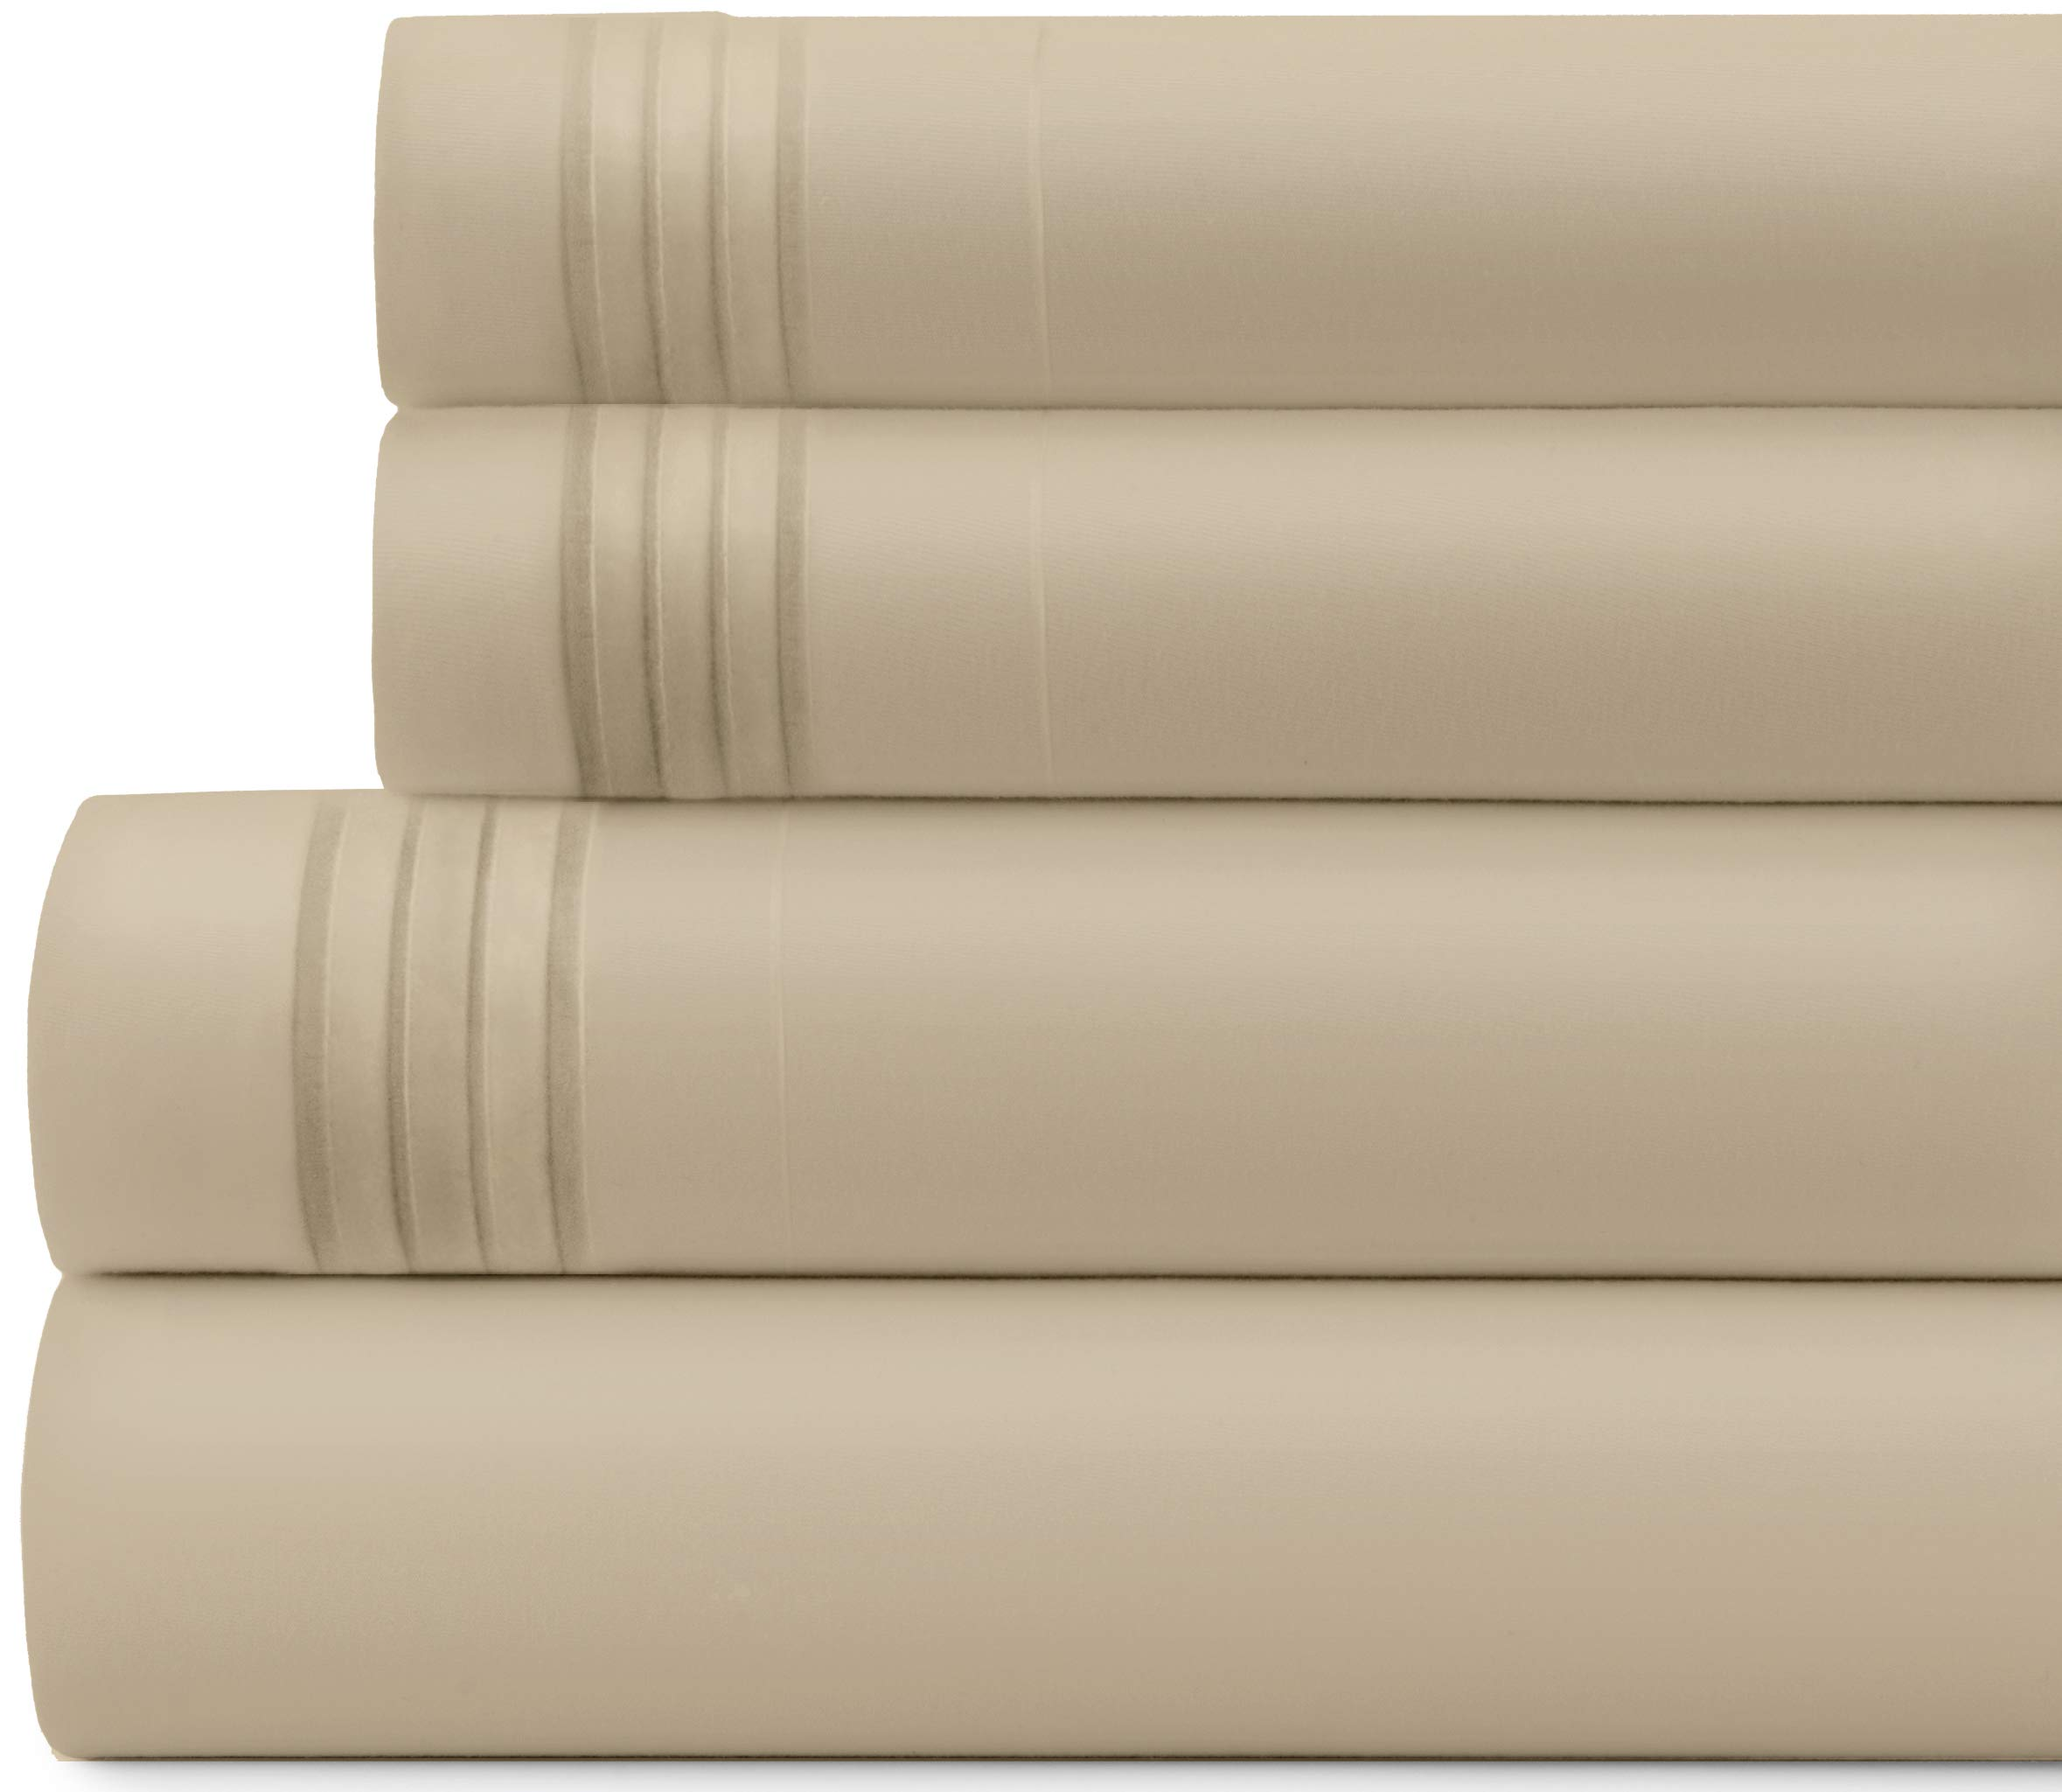 Briarwood Home Bed Sheet Set – Brushed Microfiber 1900 Premium Quality Soft Fabric Breathable Bedding – Deep Pocket – Wrinkle, Fade & Shrinkage Resistant 3 Piece Sheets (Twin/Beige)